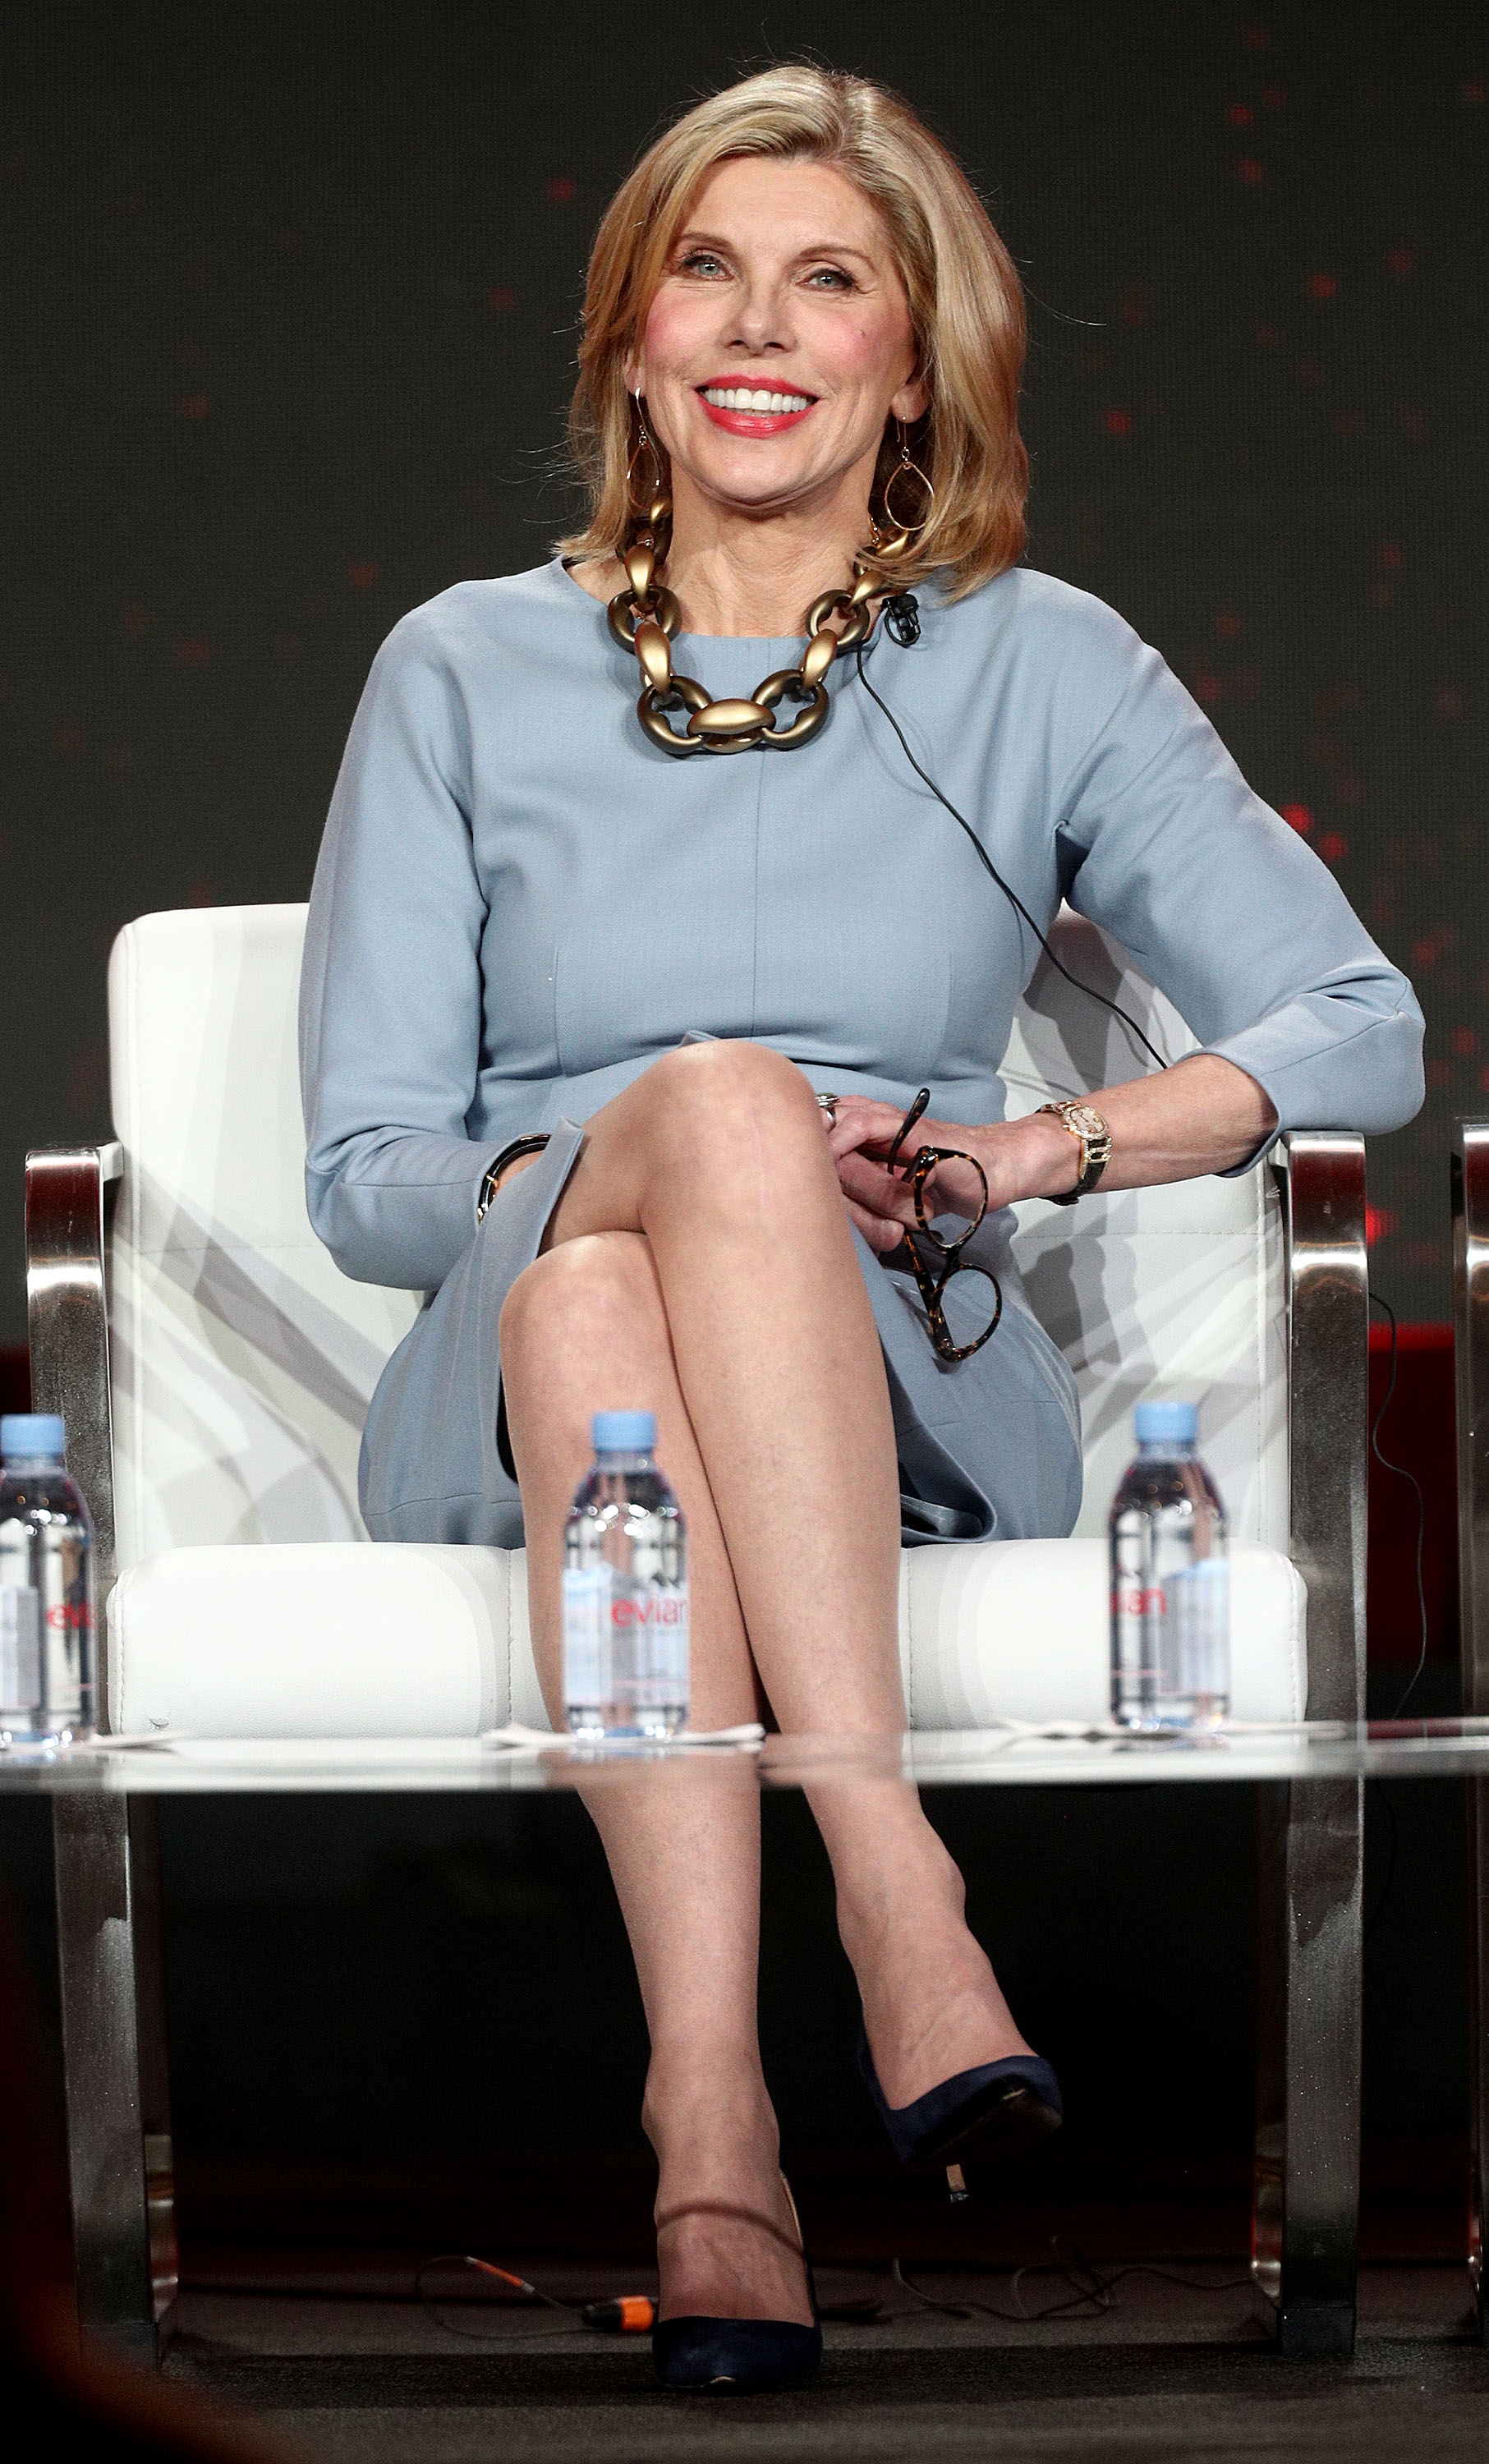 Christine Baranski of the television show 'The Good Fight' speaks during the CBS segment of the 2019 Winter Television Critics Association Press Tour at The Langham Huntington, Pasadena on January 30, 2019 in Pasadena, California (Getty Images)